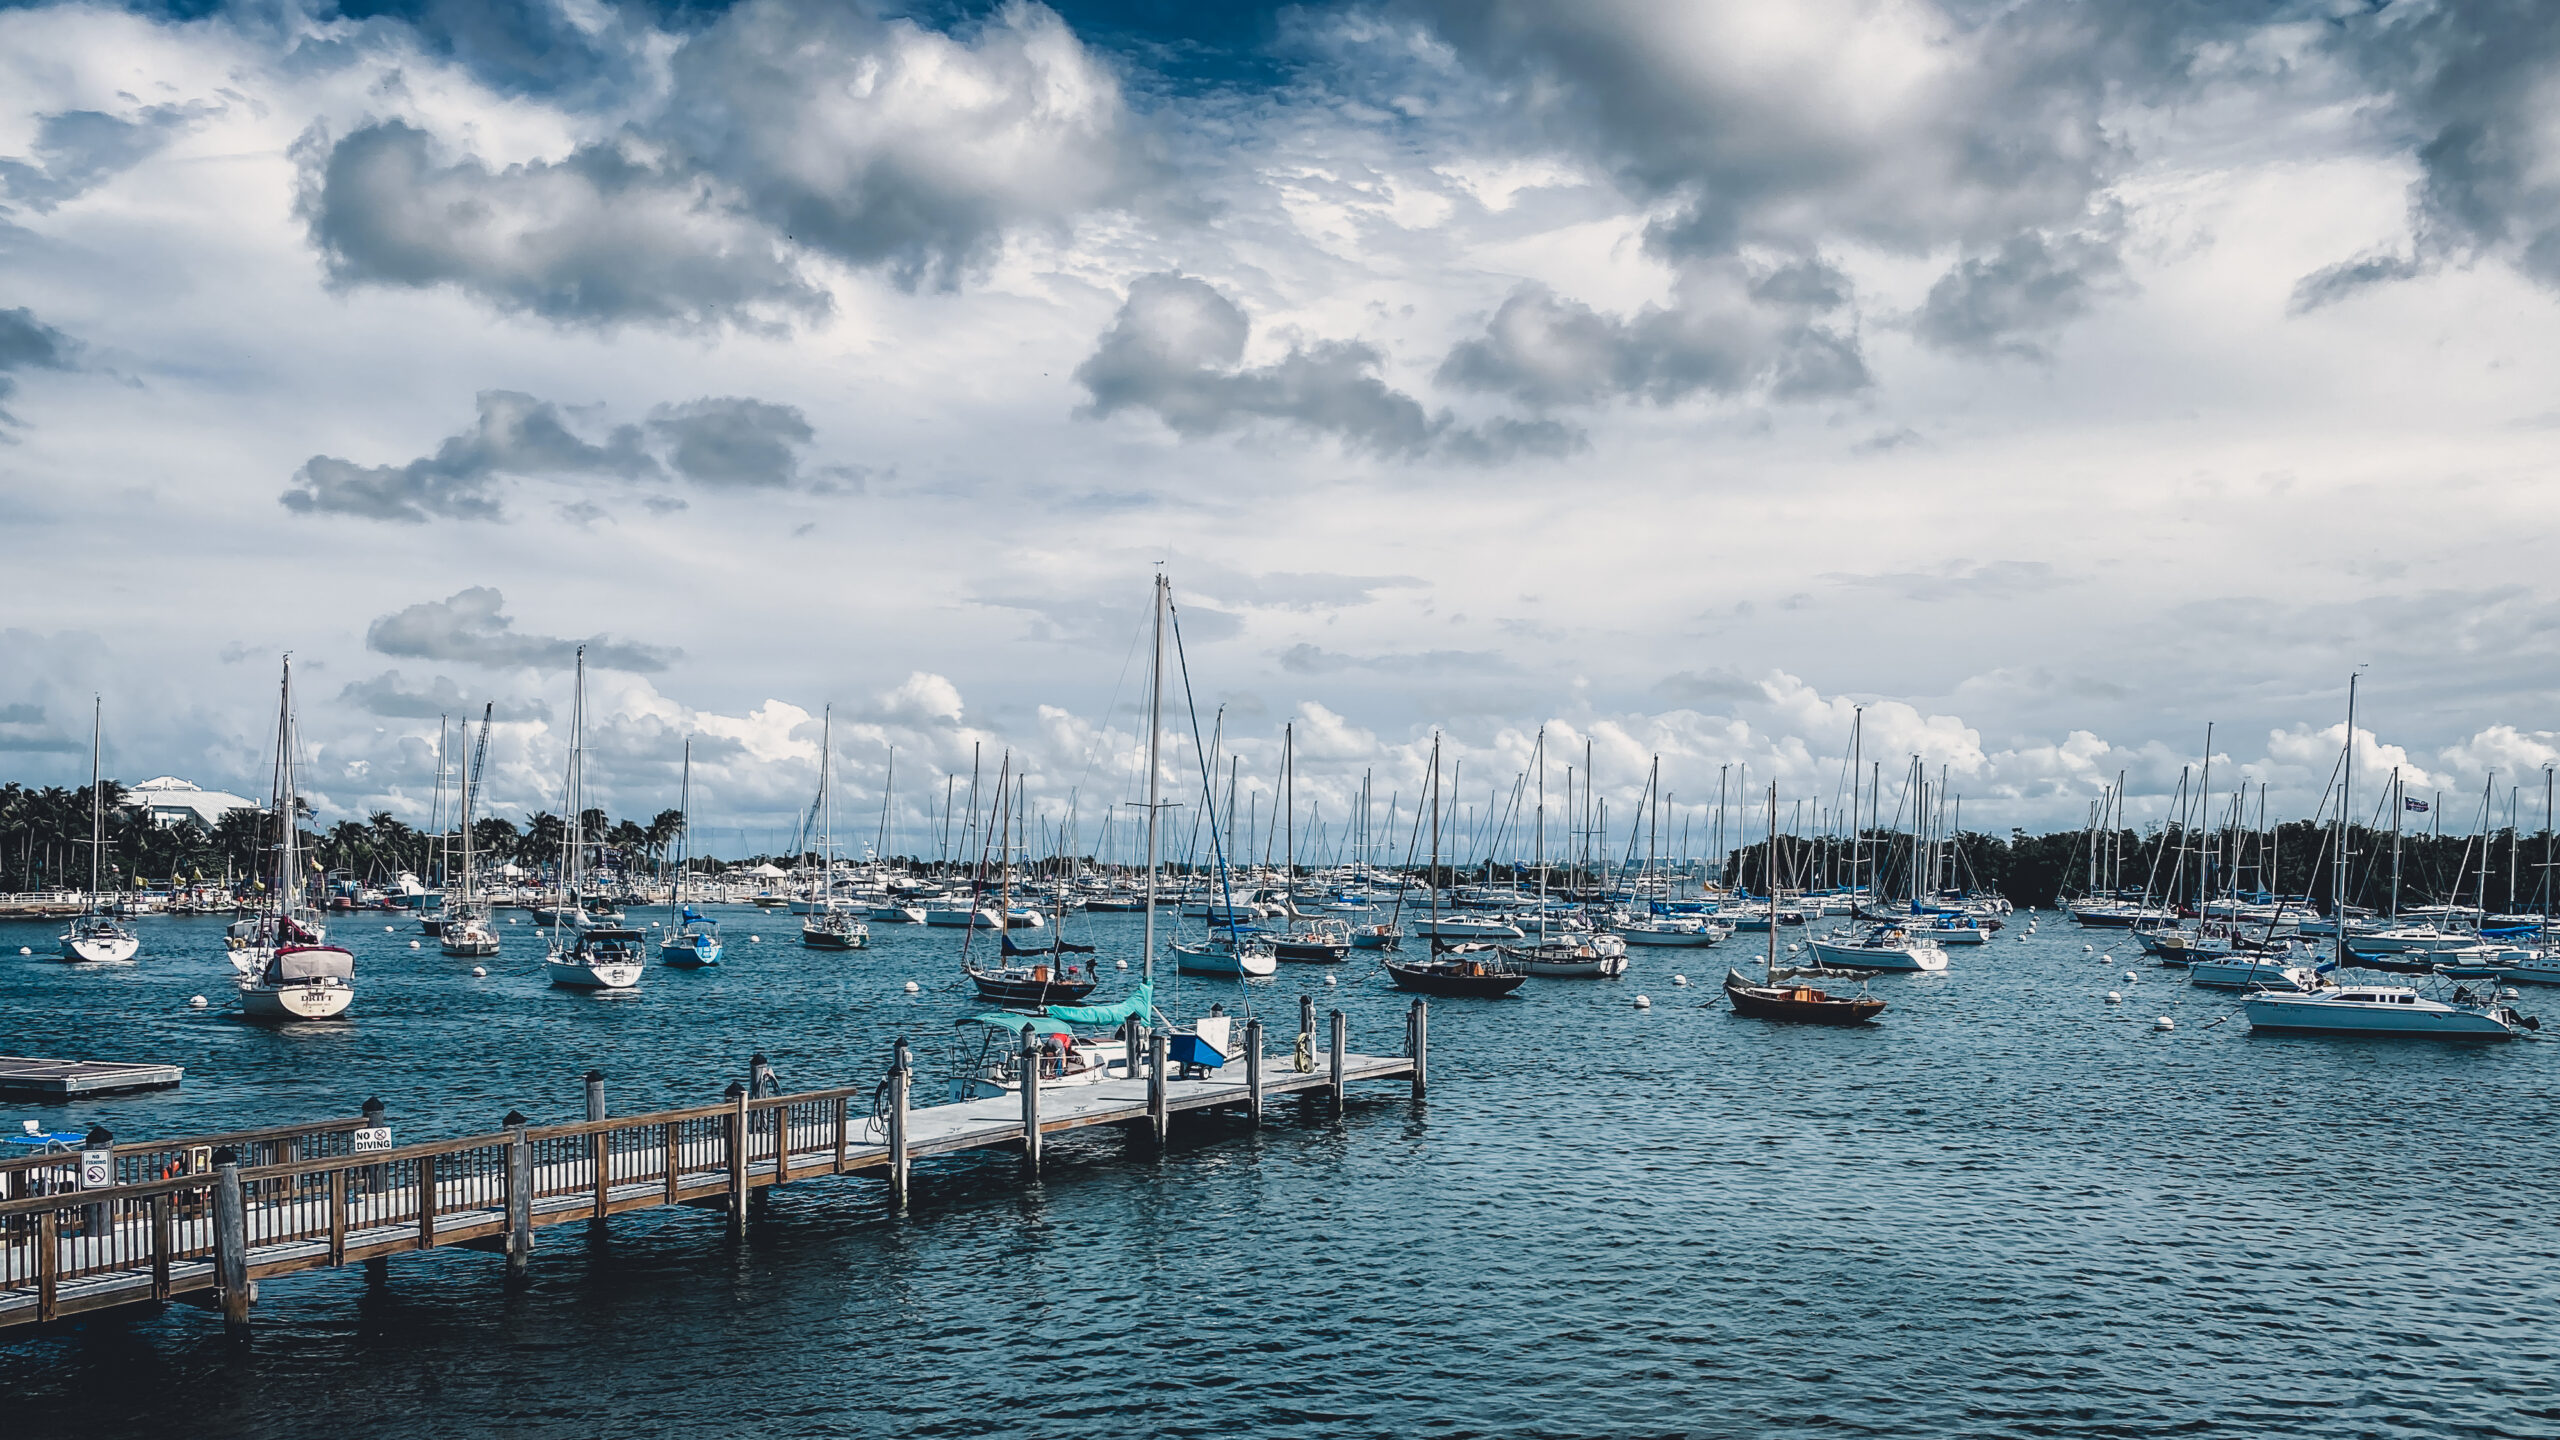 Buying a Sailboat: Our Next Adventure!